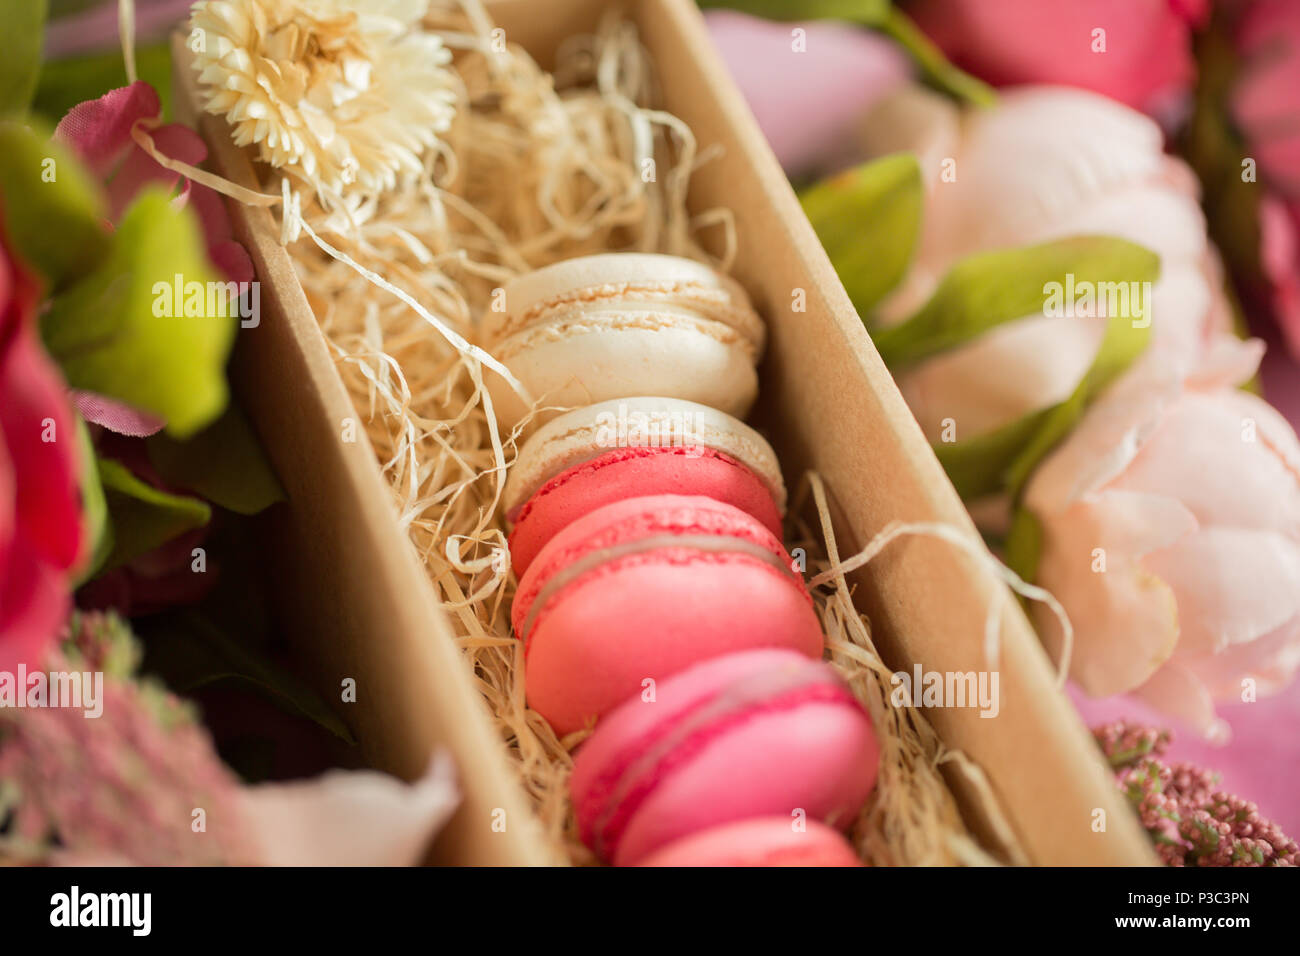 Multicolored Candy In Box Stock Photos Amp Multicolored